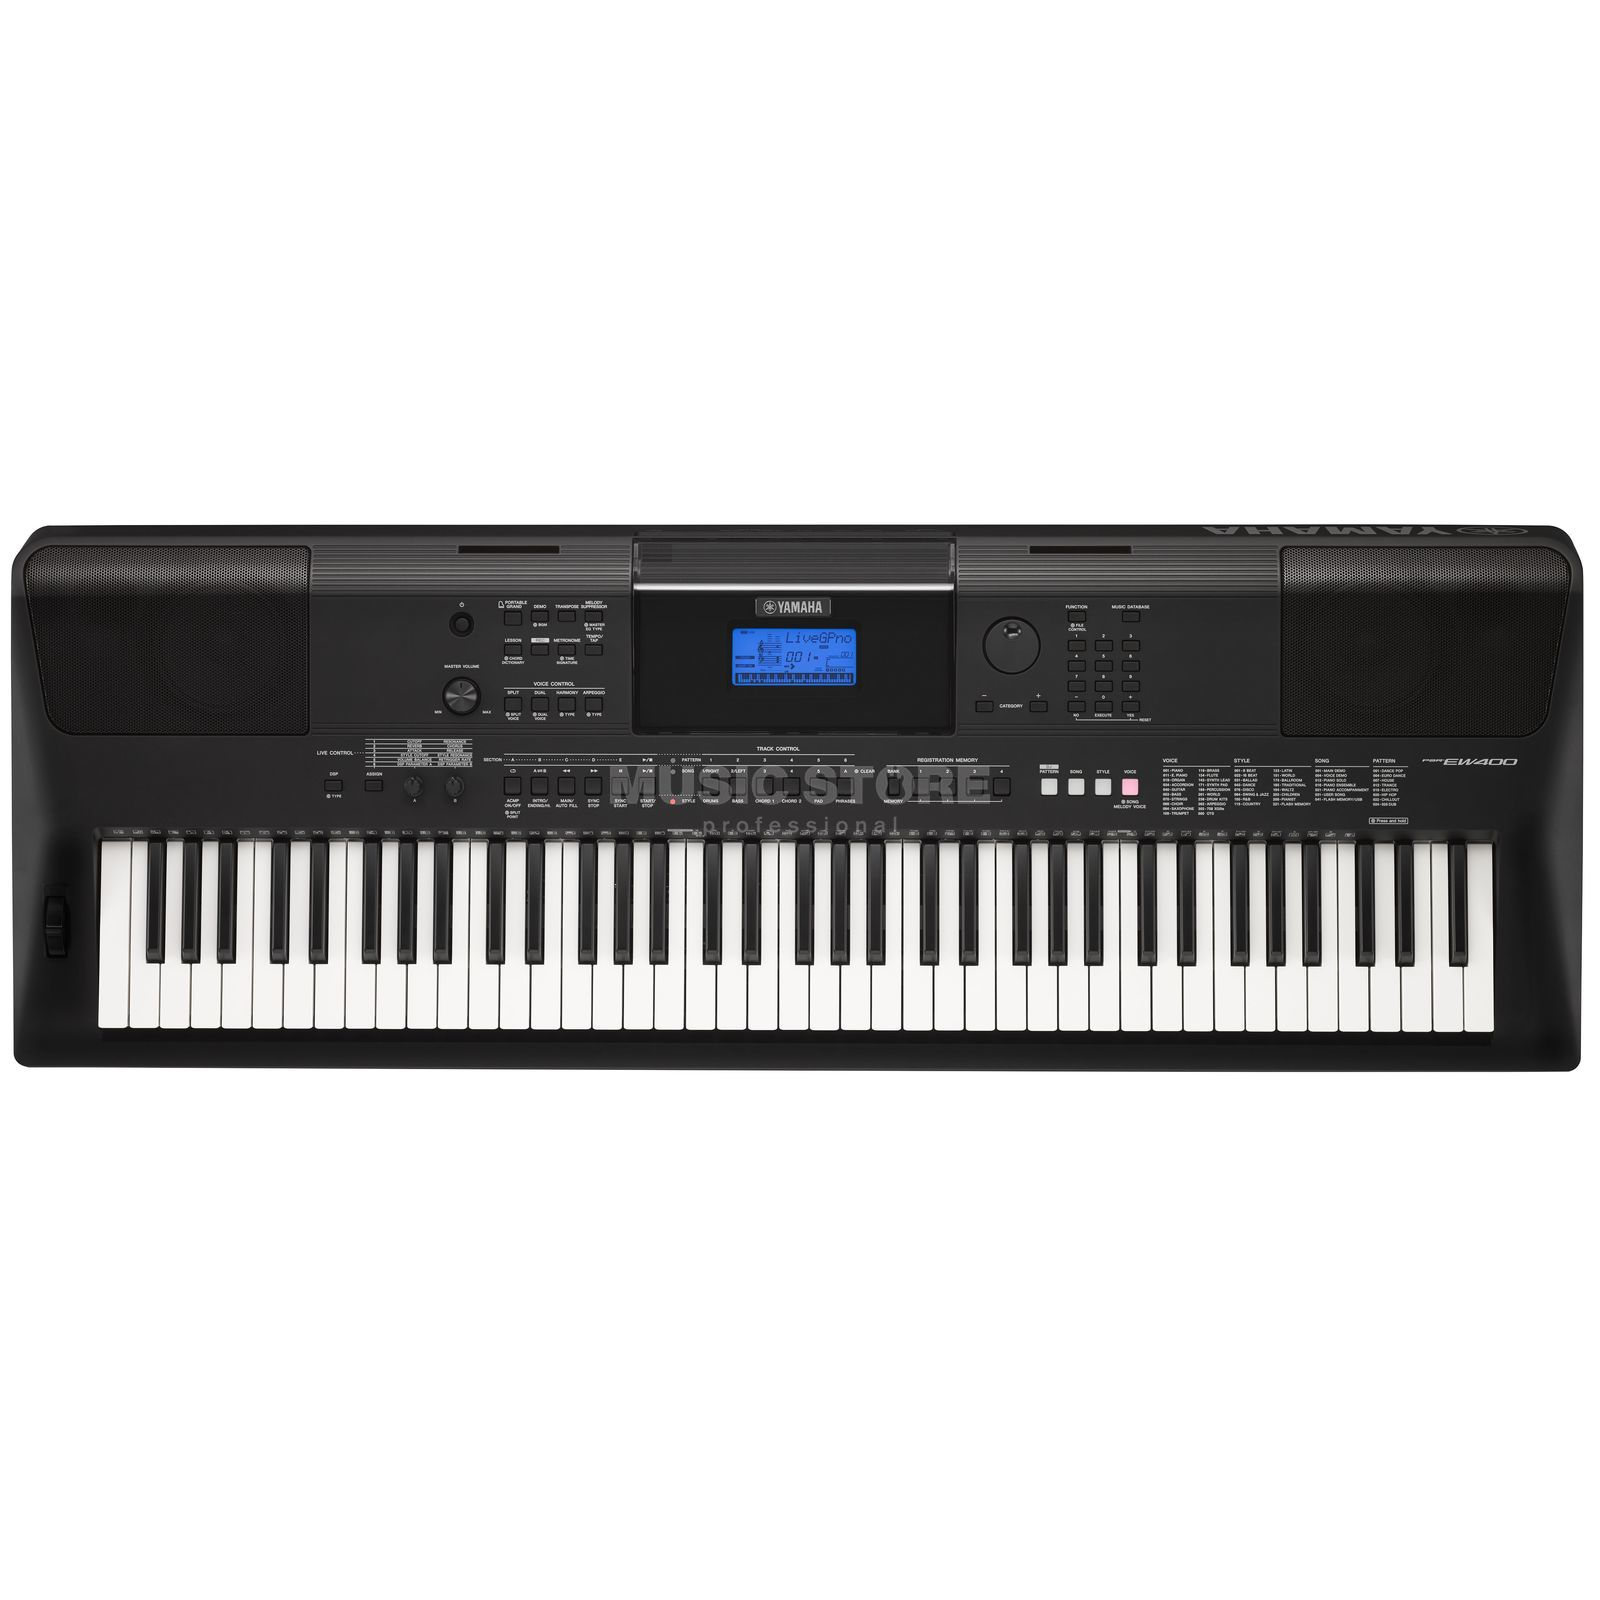 Yamaha PSR-EW400 Digital Keyboard Изображение товара